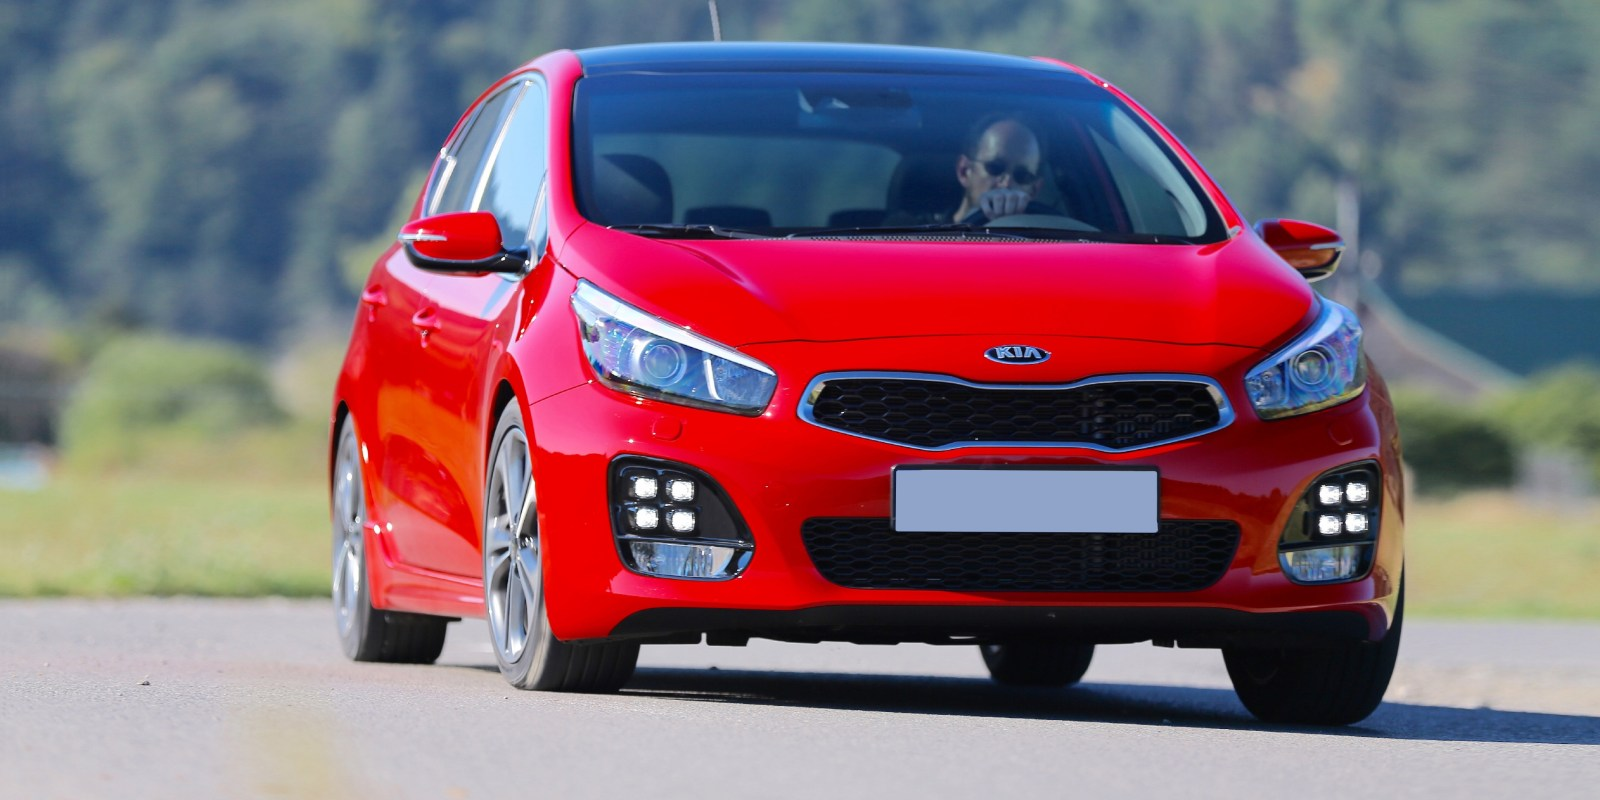 Kia Ceed 2009 Review Kia Ceed Specs Car Reviews 2018